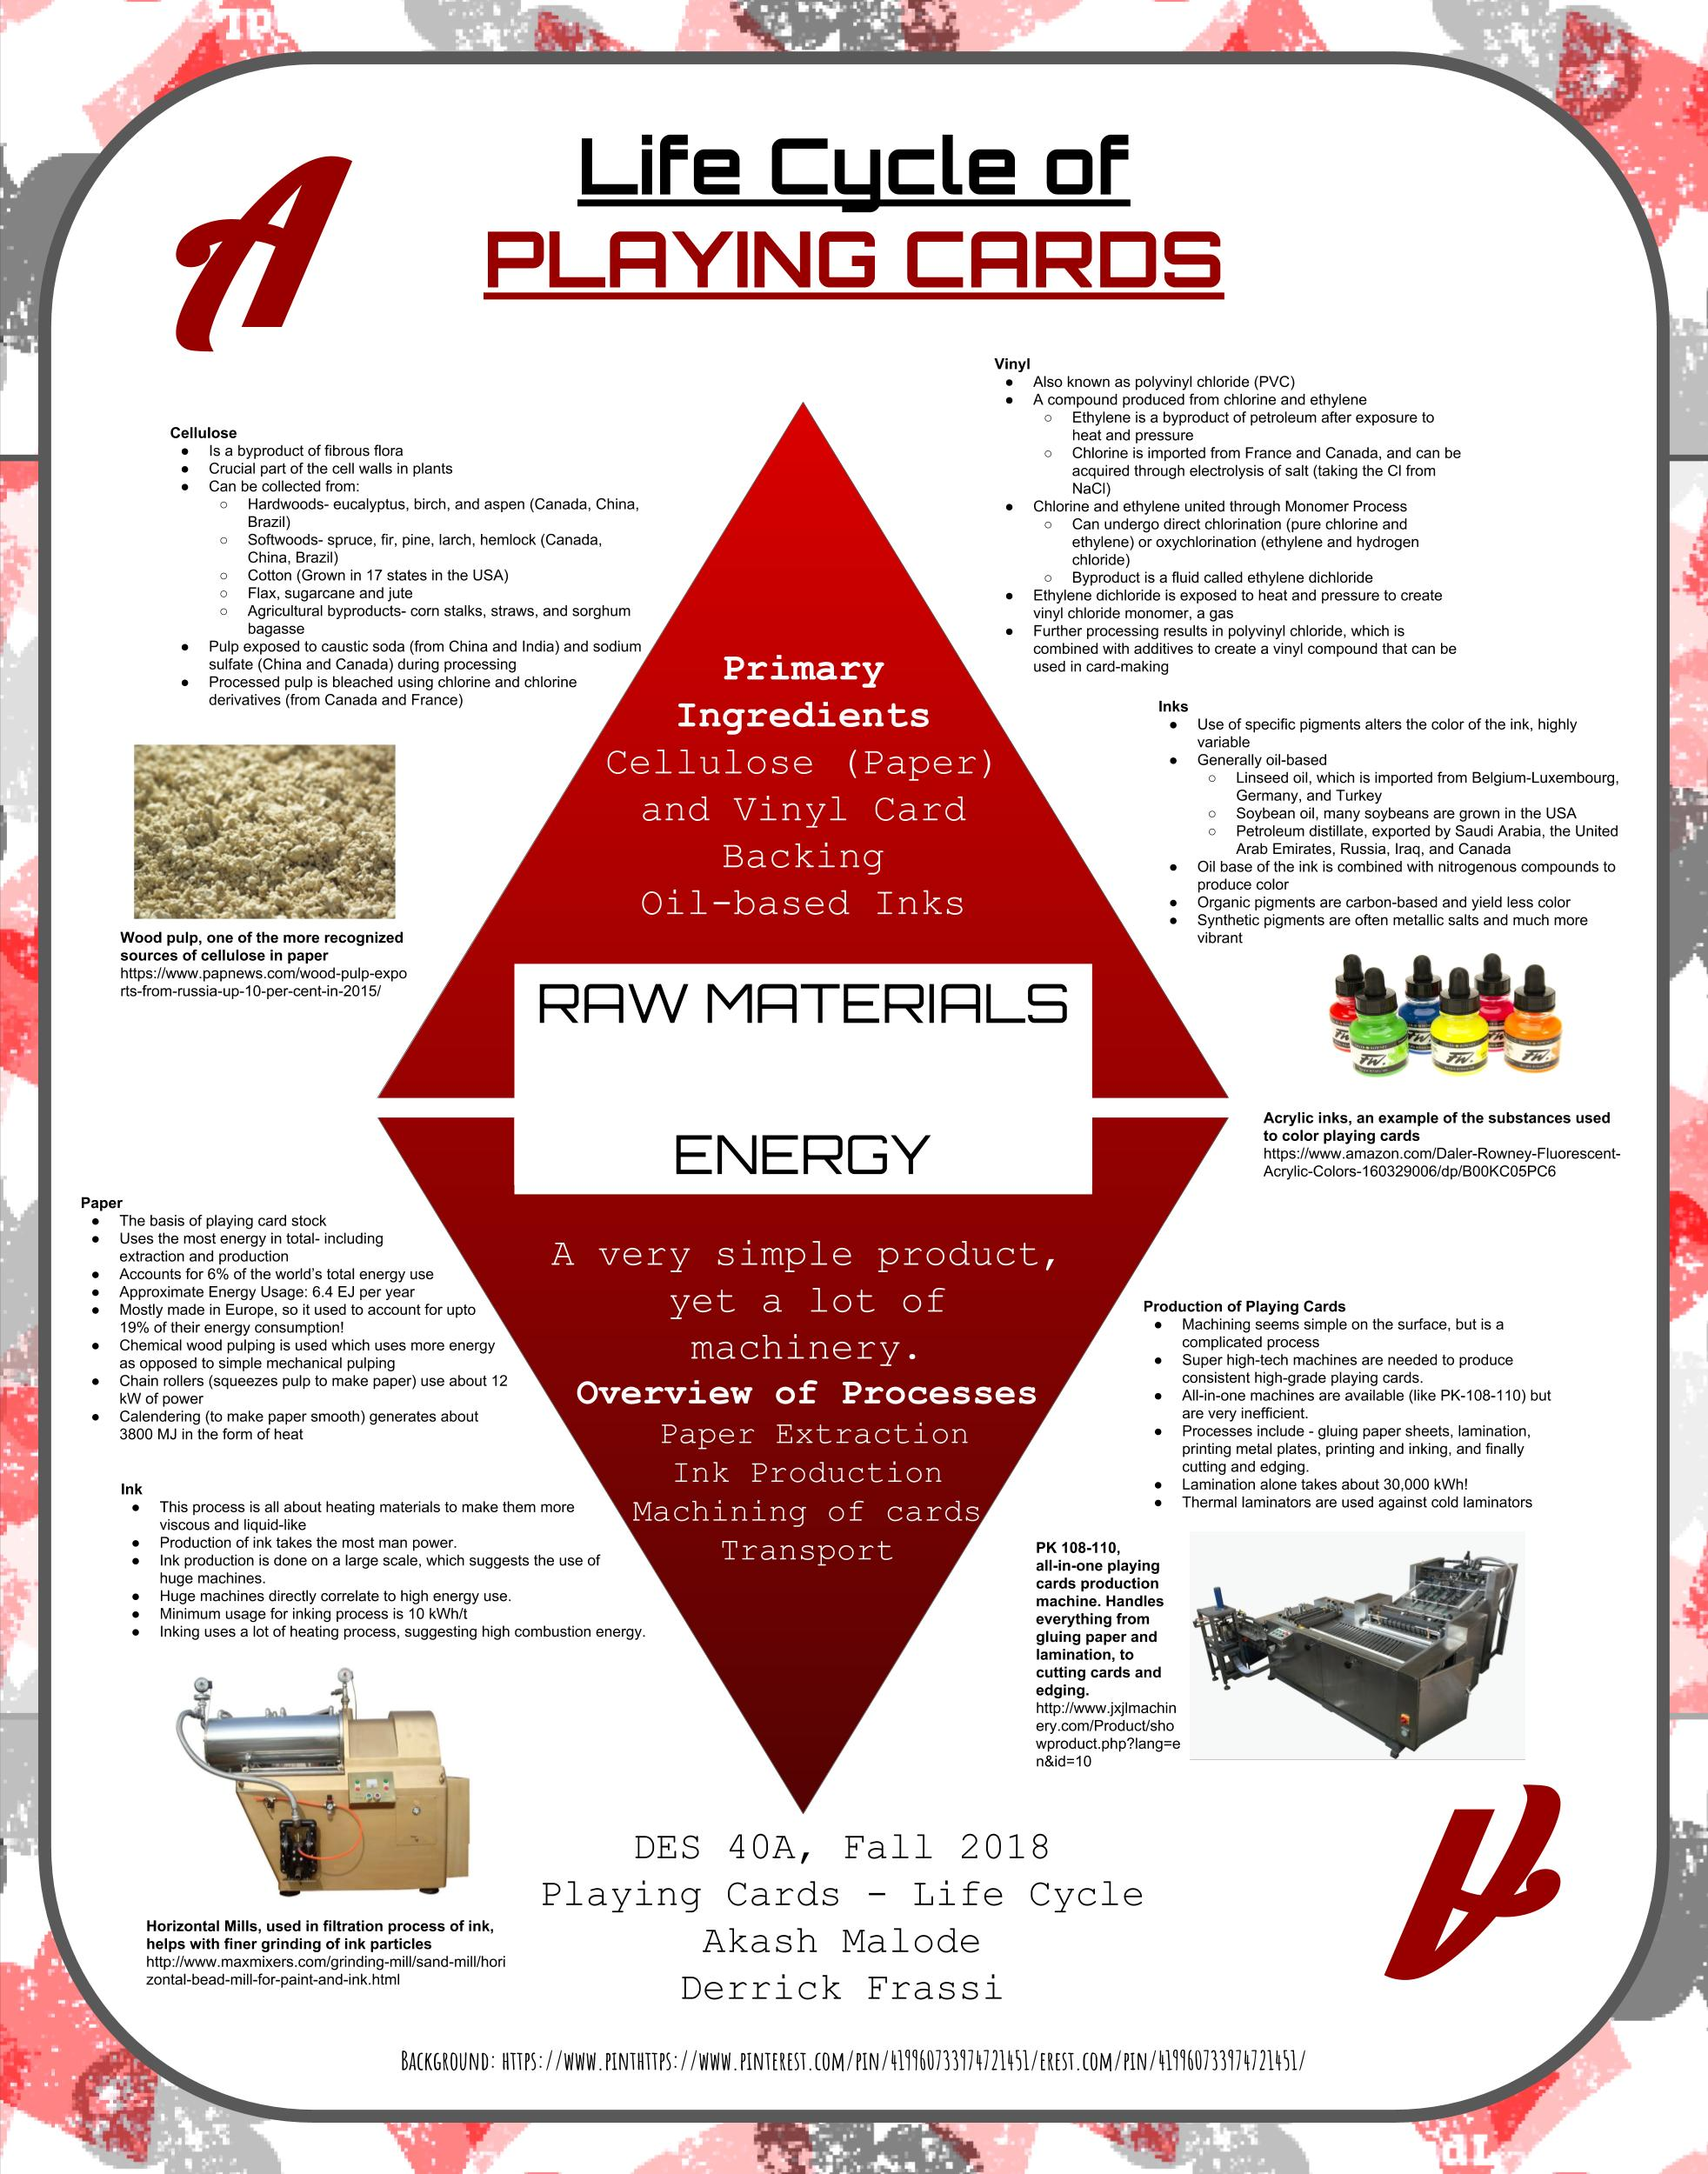 Playing Cards - Poster.jpg